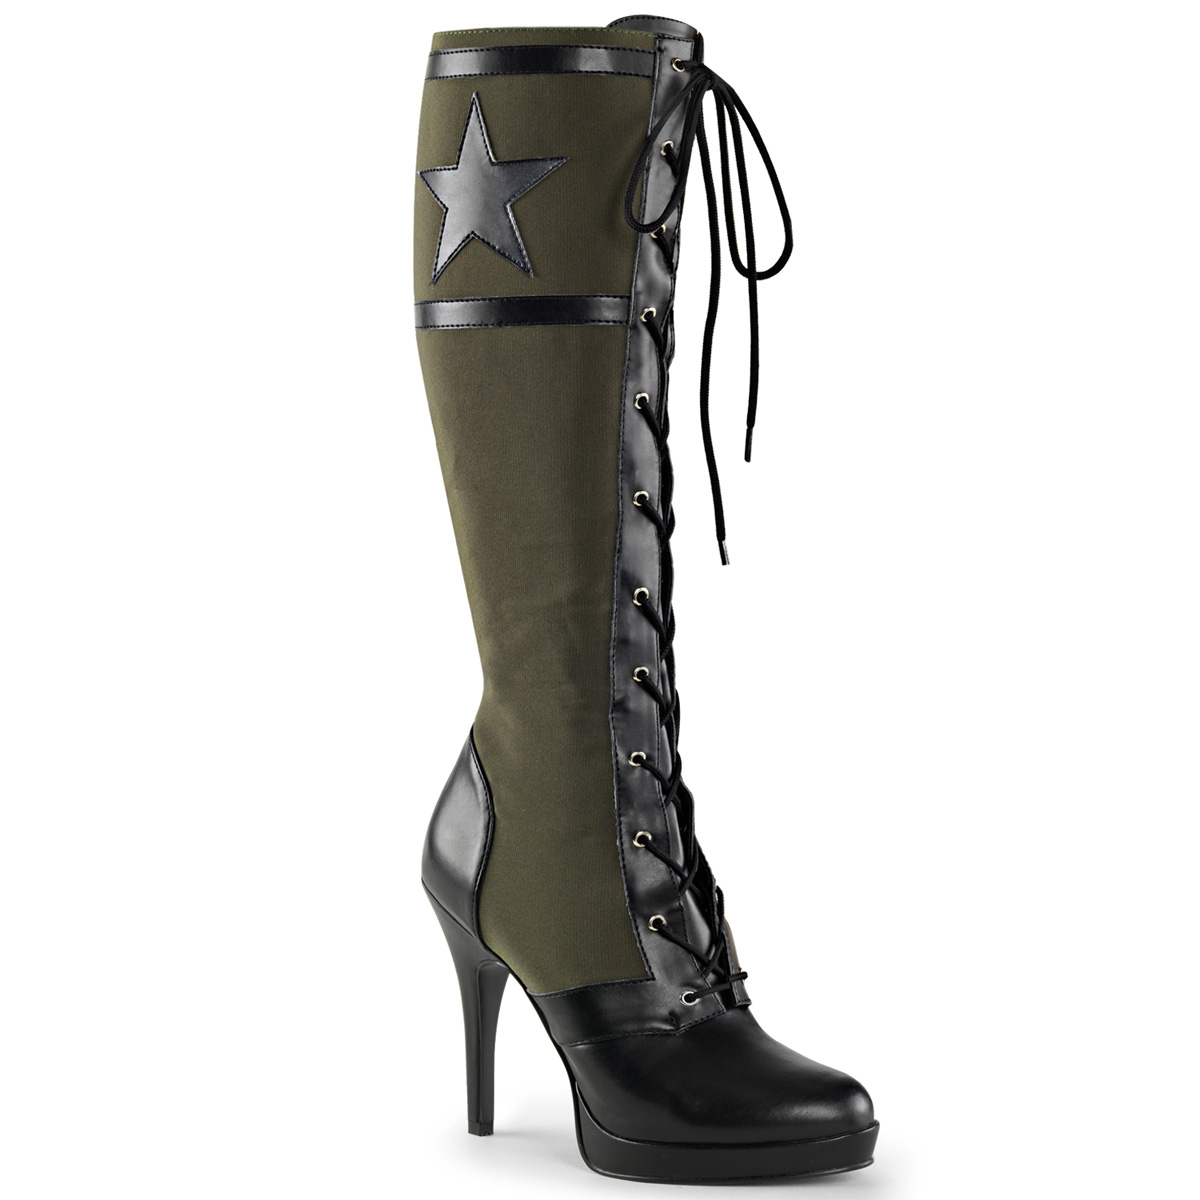 Knee Boot ARENA-2022 - Olive-Green